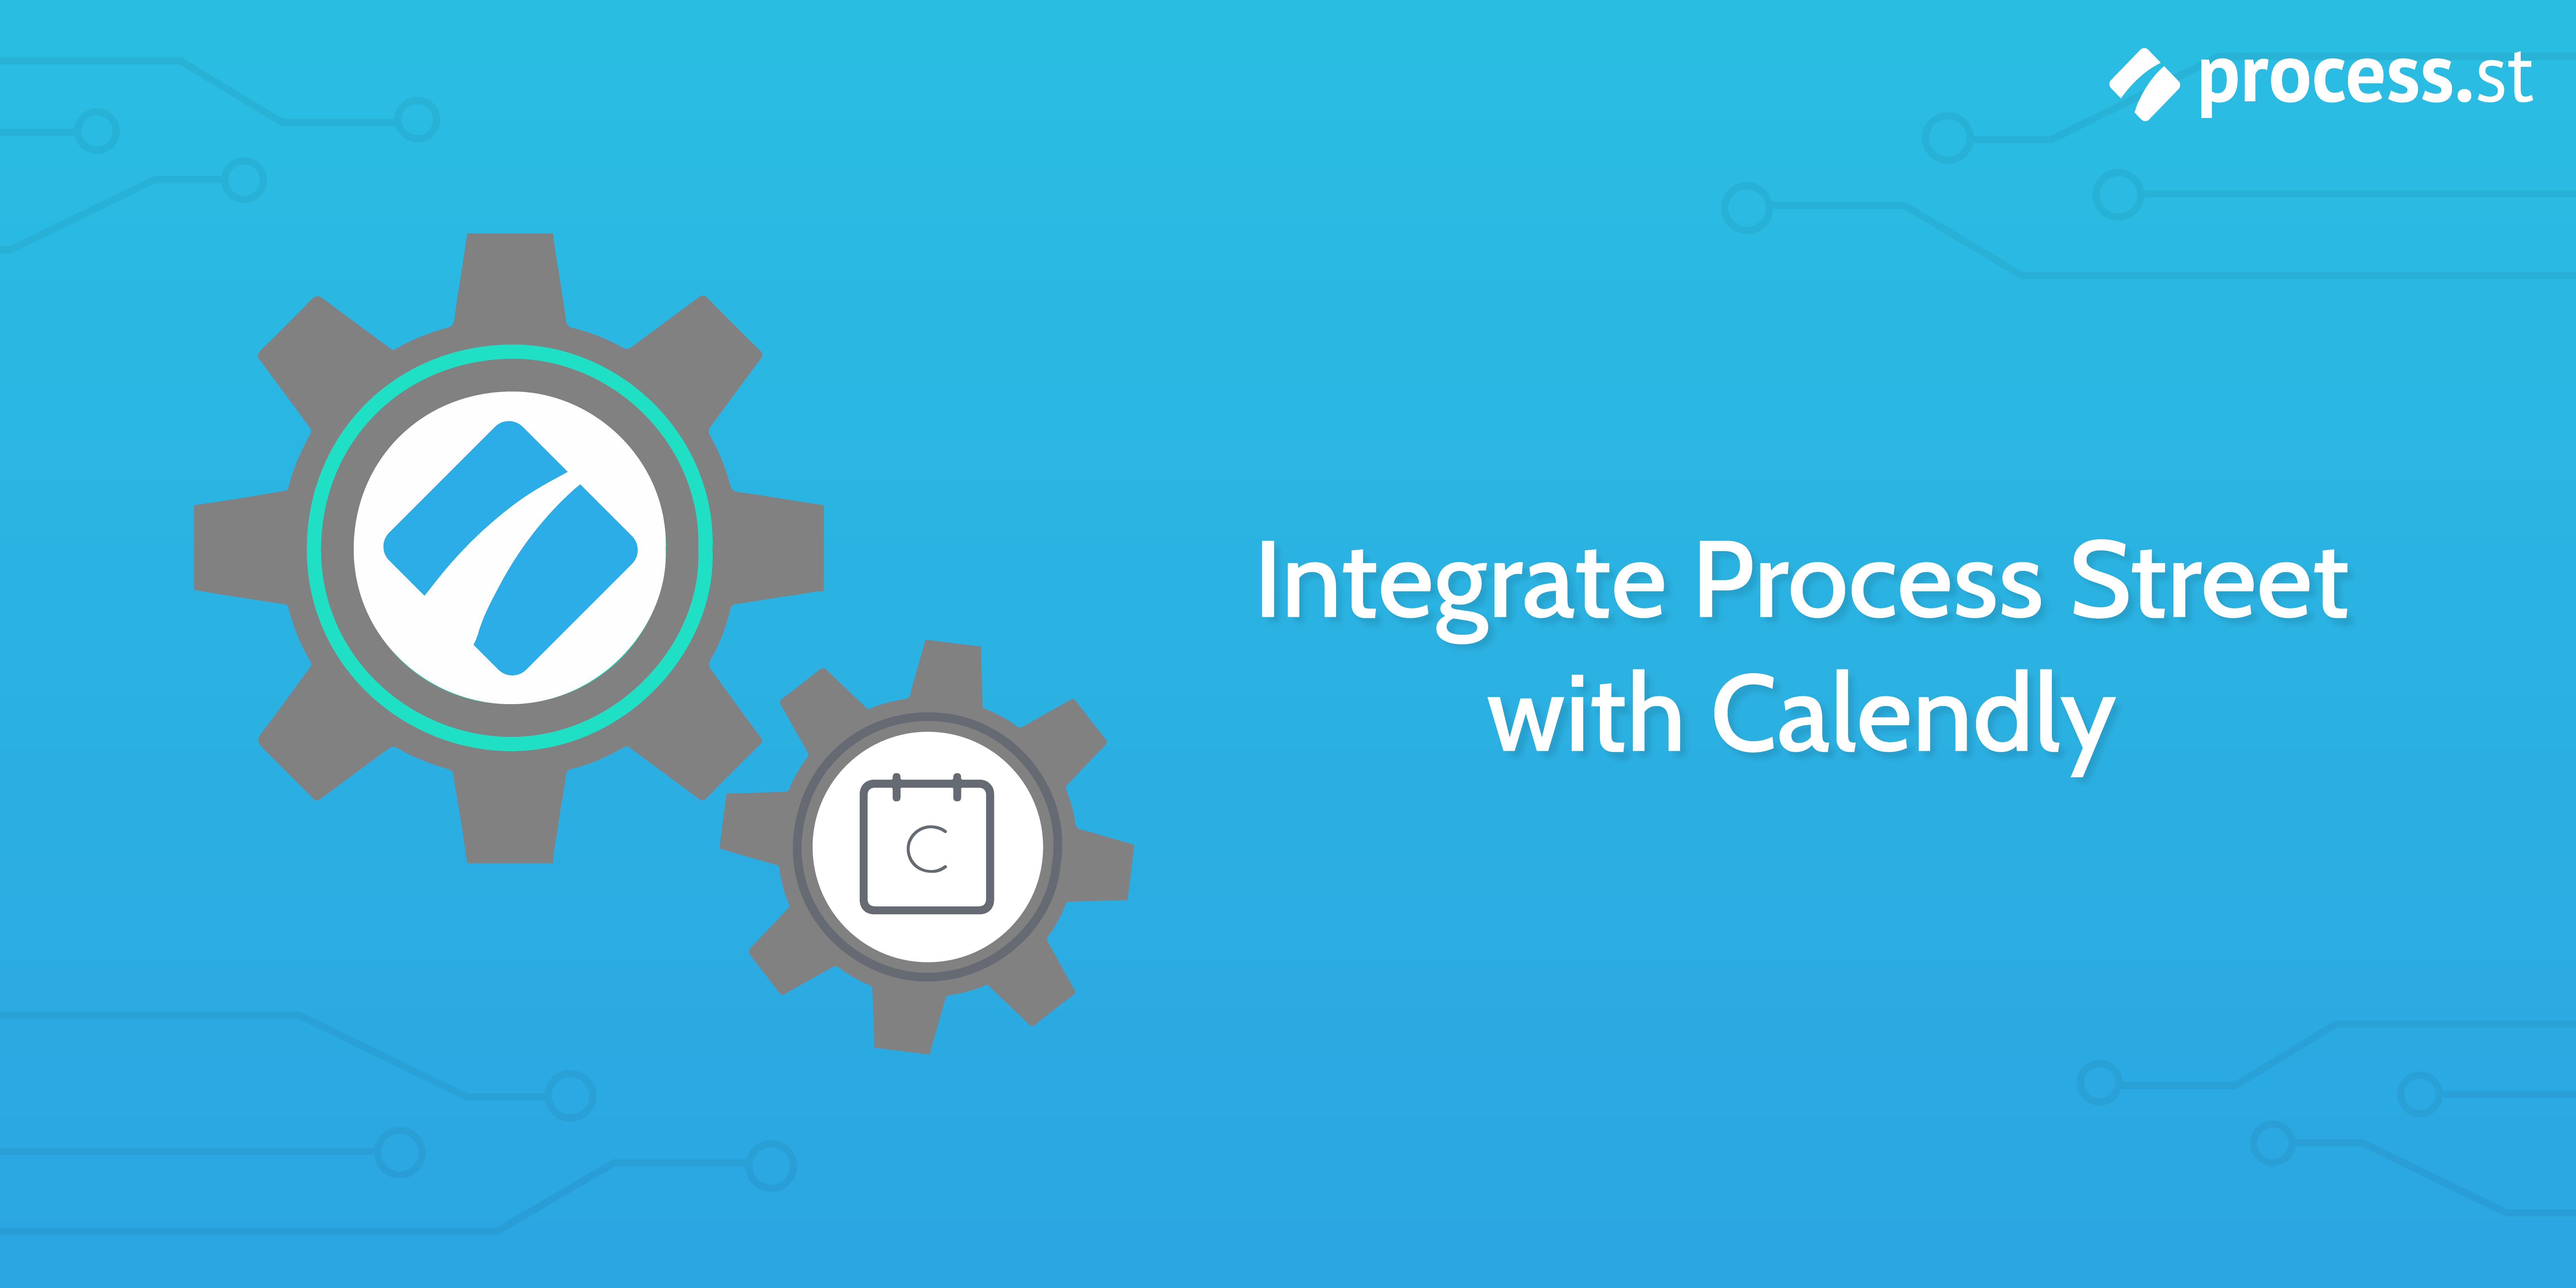 Integrate Process Street with Calendly